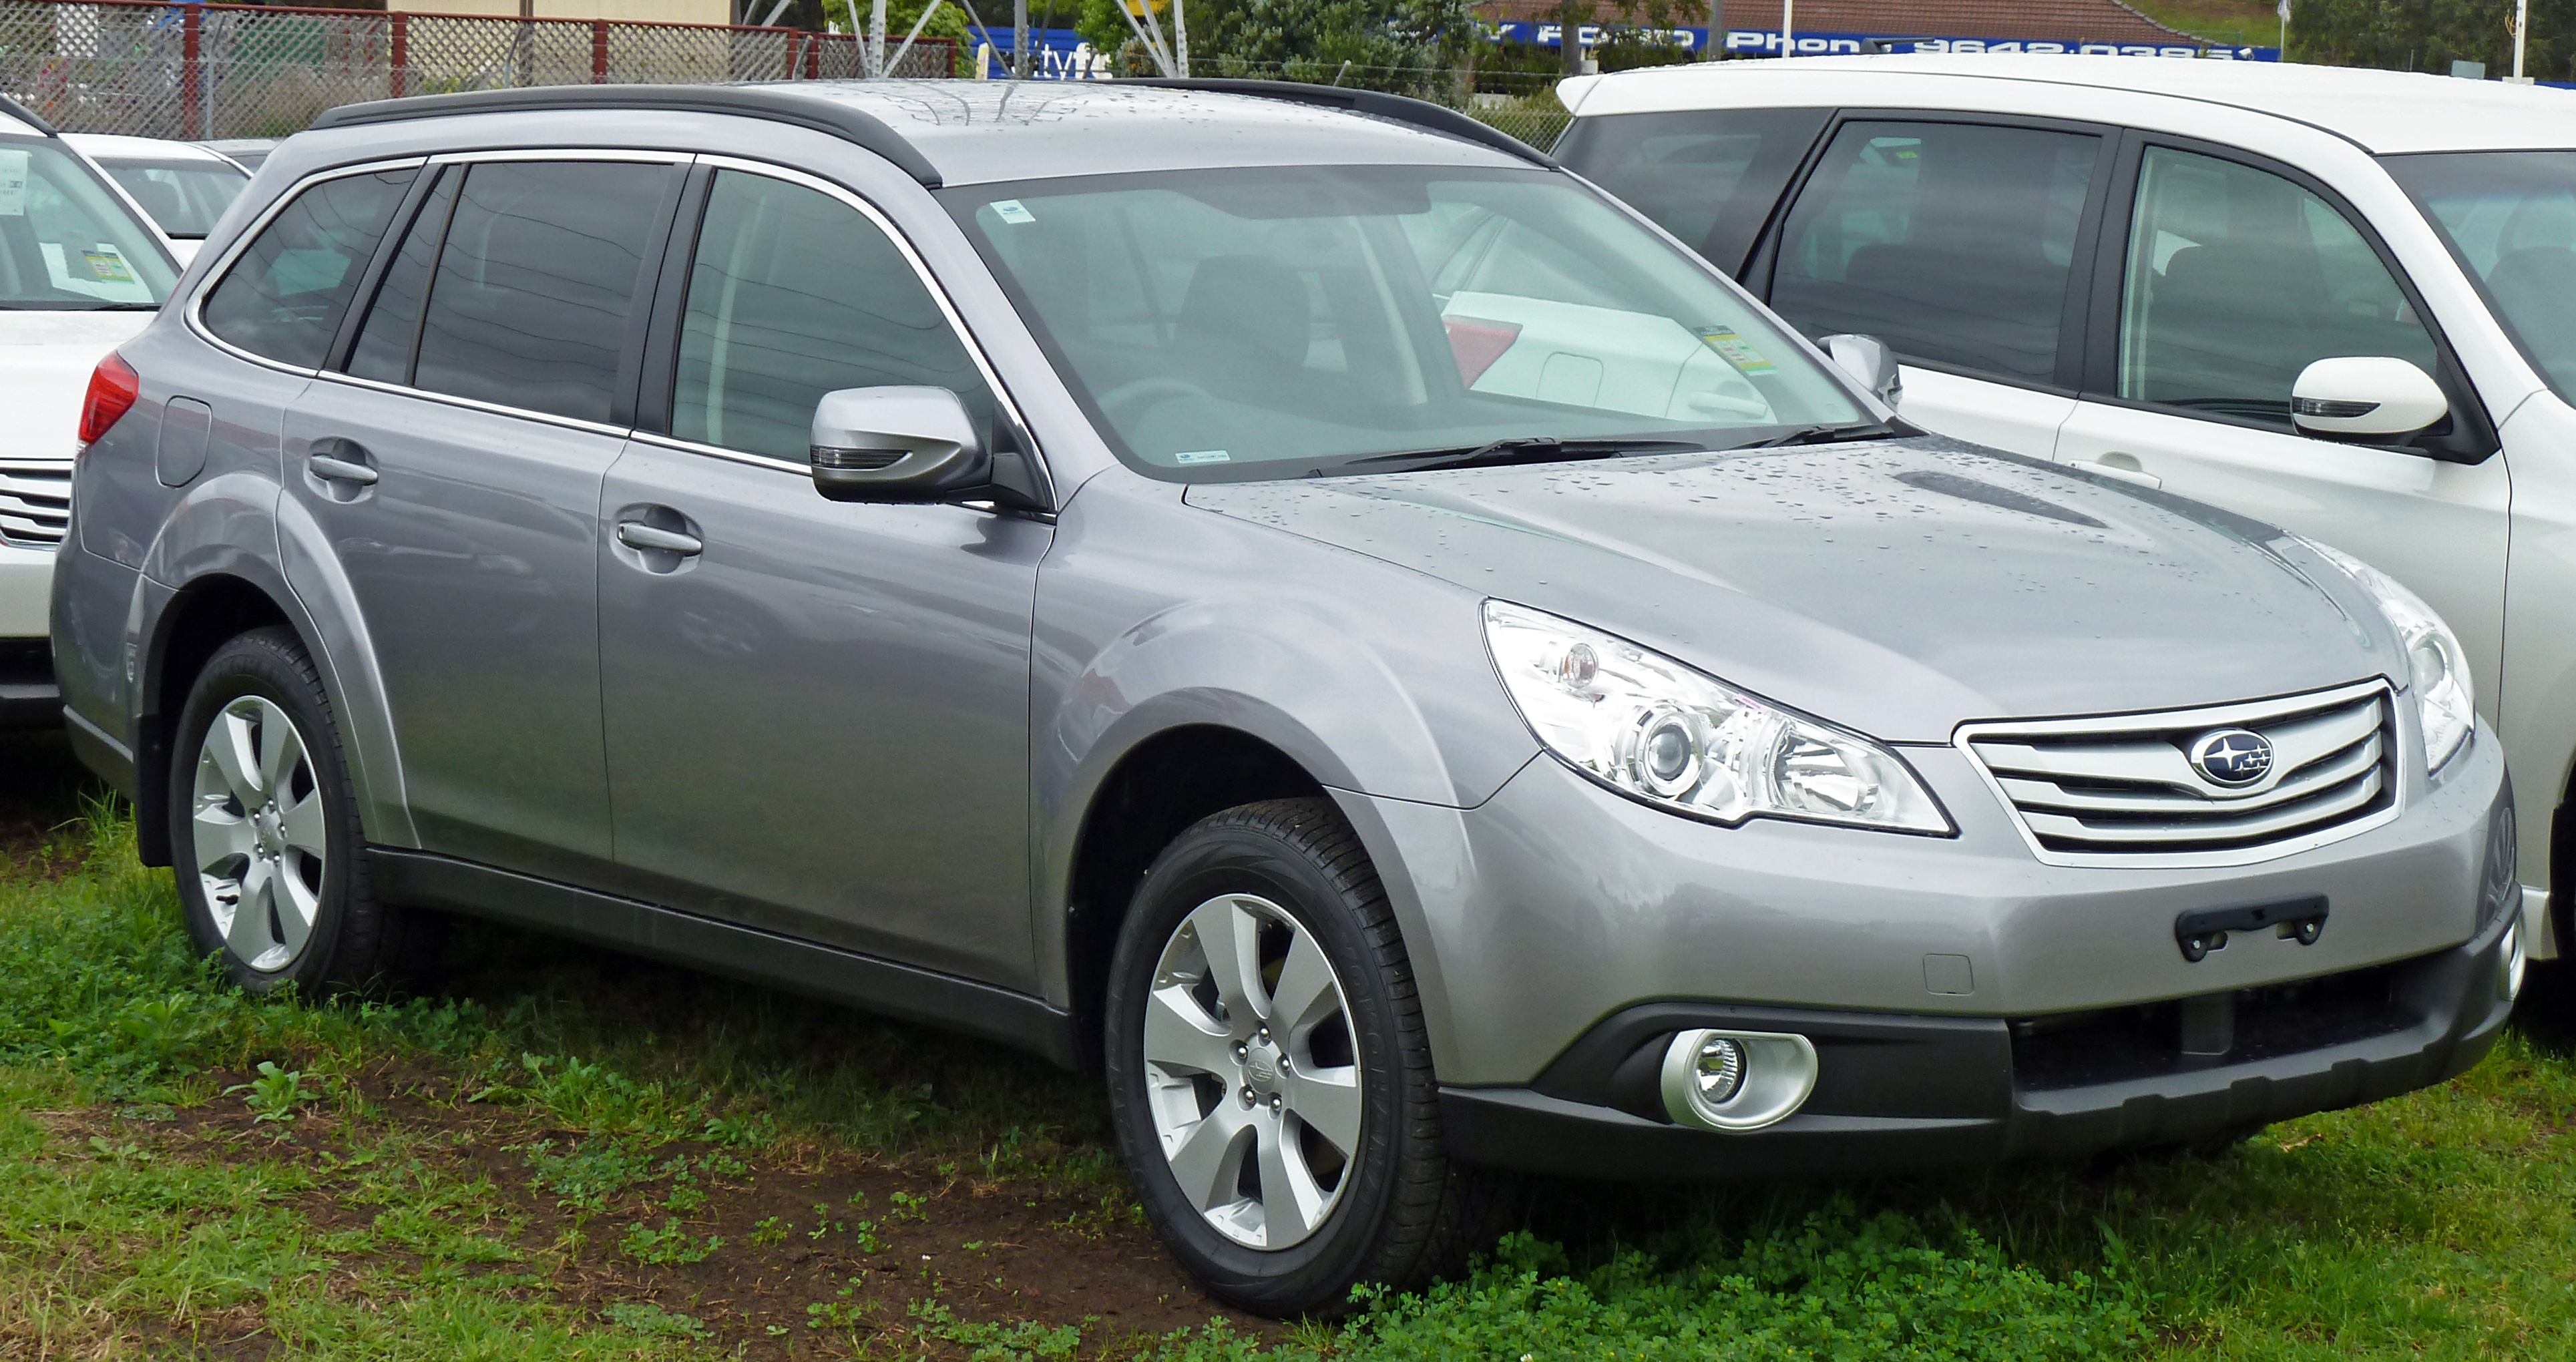 2010 subaru outback information and photos zombiedrive 2010 subaru outback 16 subaru outback 16 vanachro Choice Image